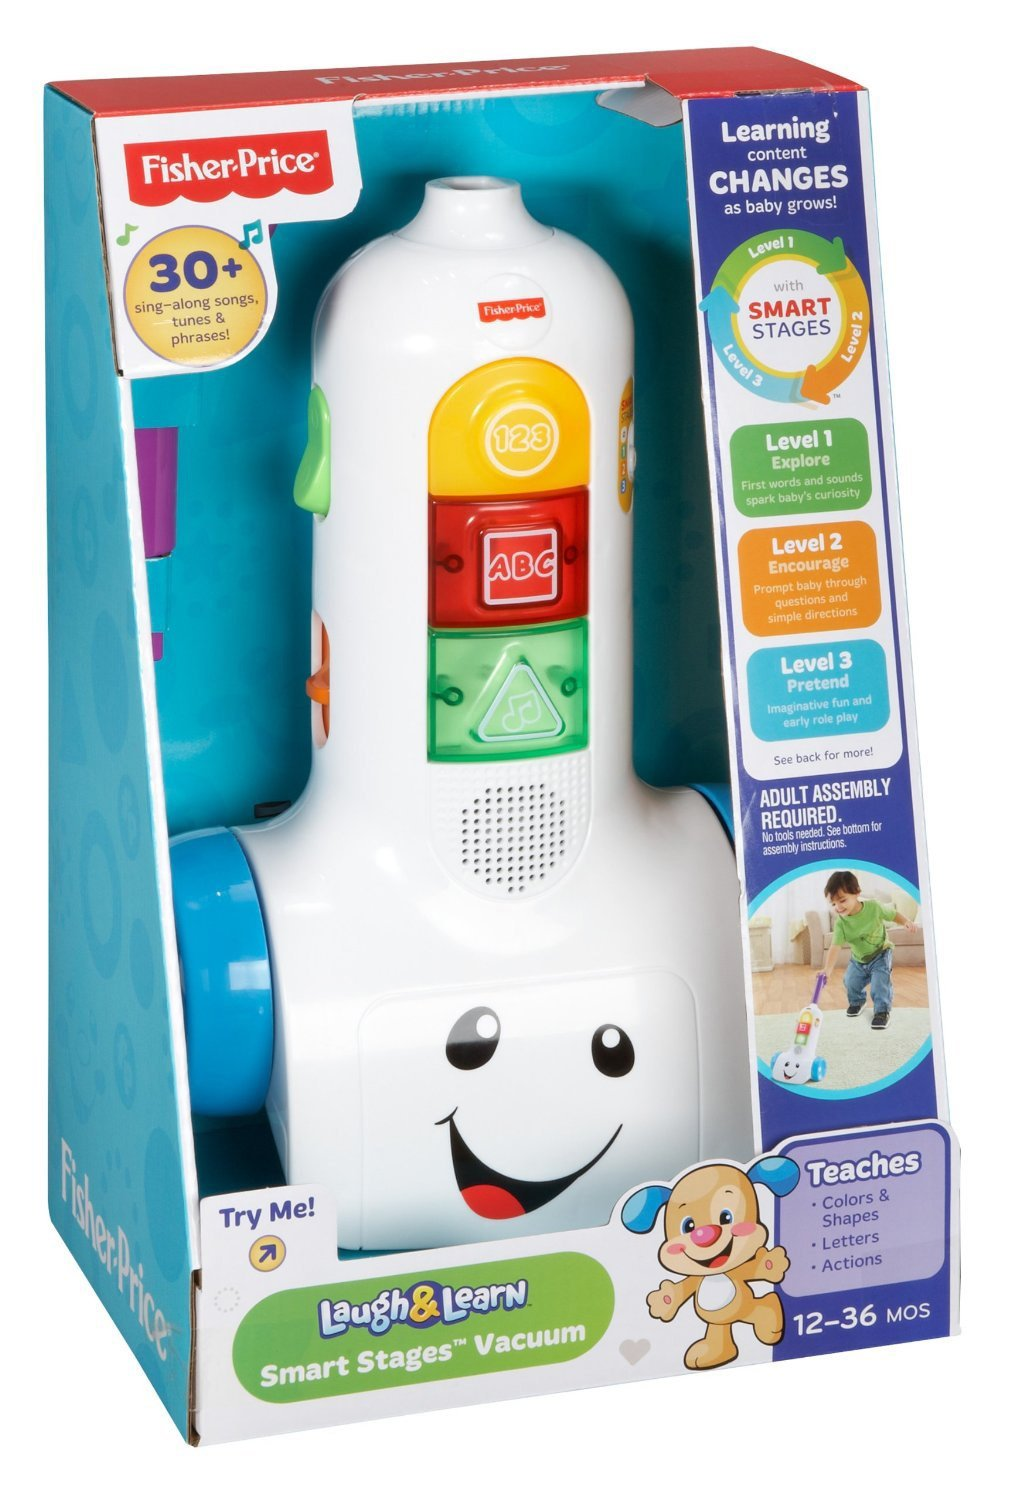 Bnib Fisher Price Laugh Learn Smart Stages Vacuum Babies Kids Phone Toys Walkers On Carousell